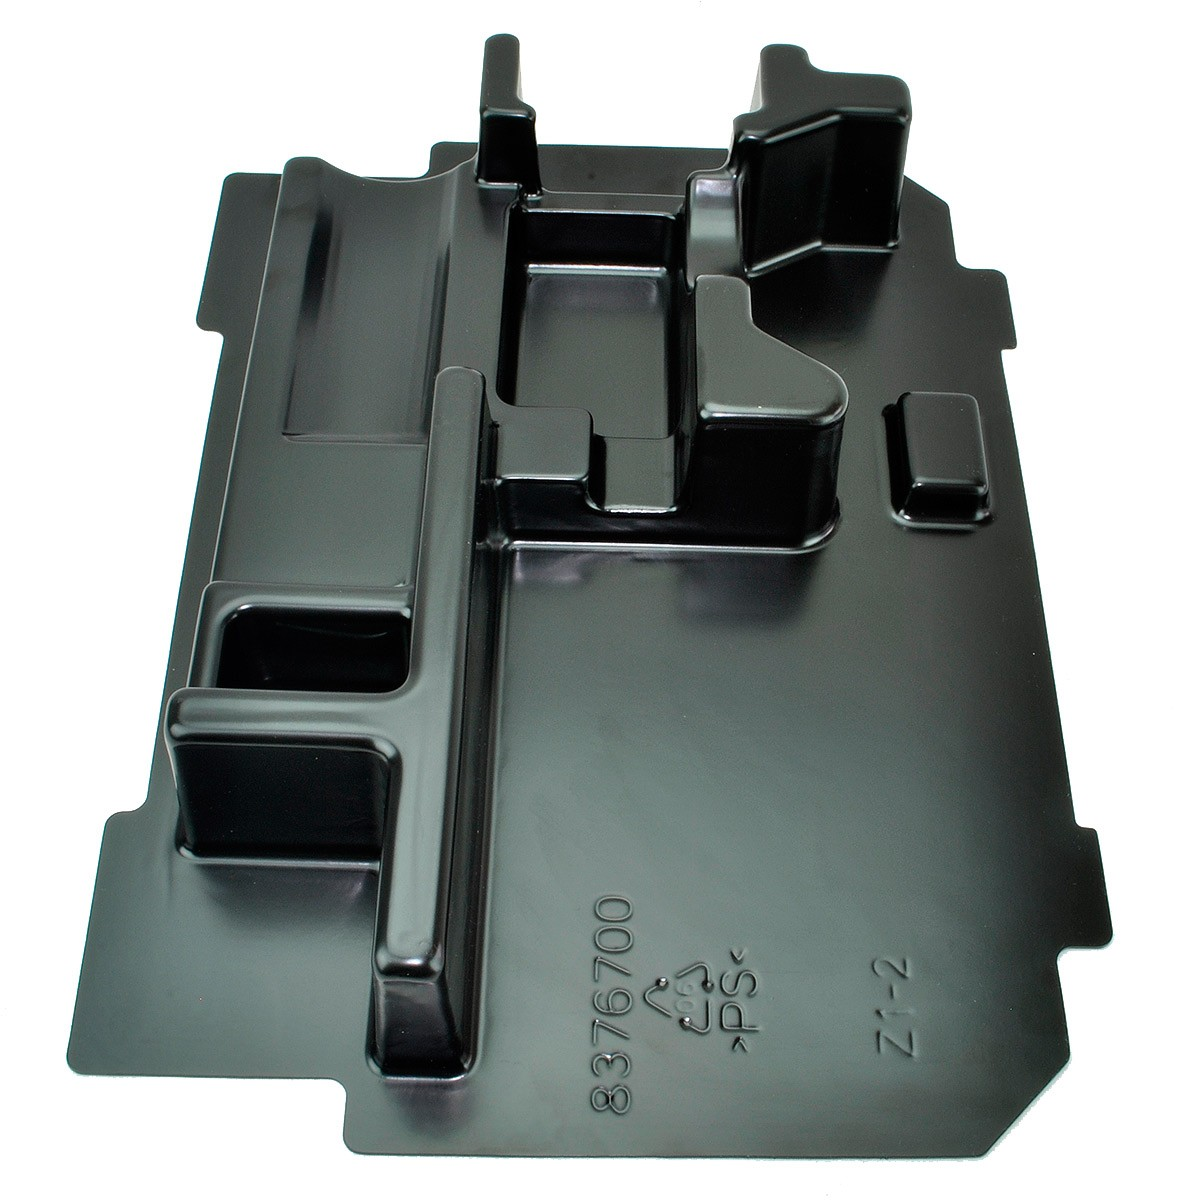 Makita 837670-0 DTD146 DTD152 DTD153 DTW190 DTW285 Inlay Tray for Makpac Type 2 Connector Case